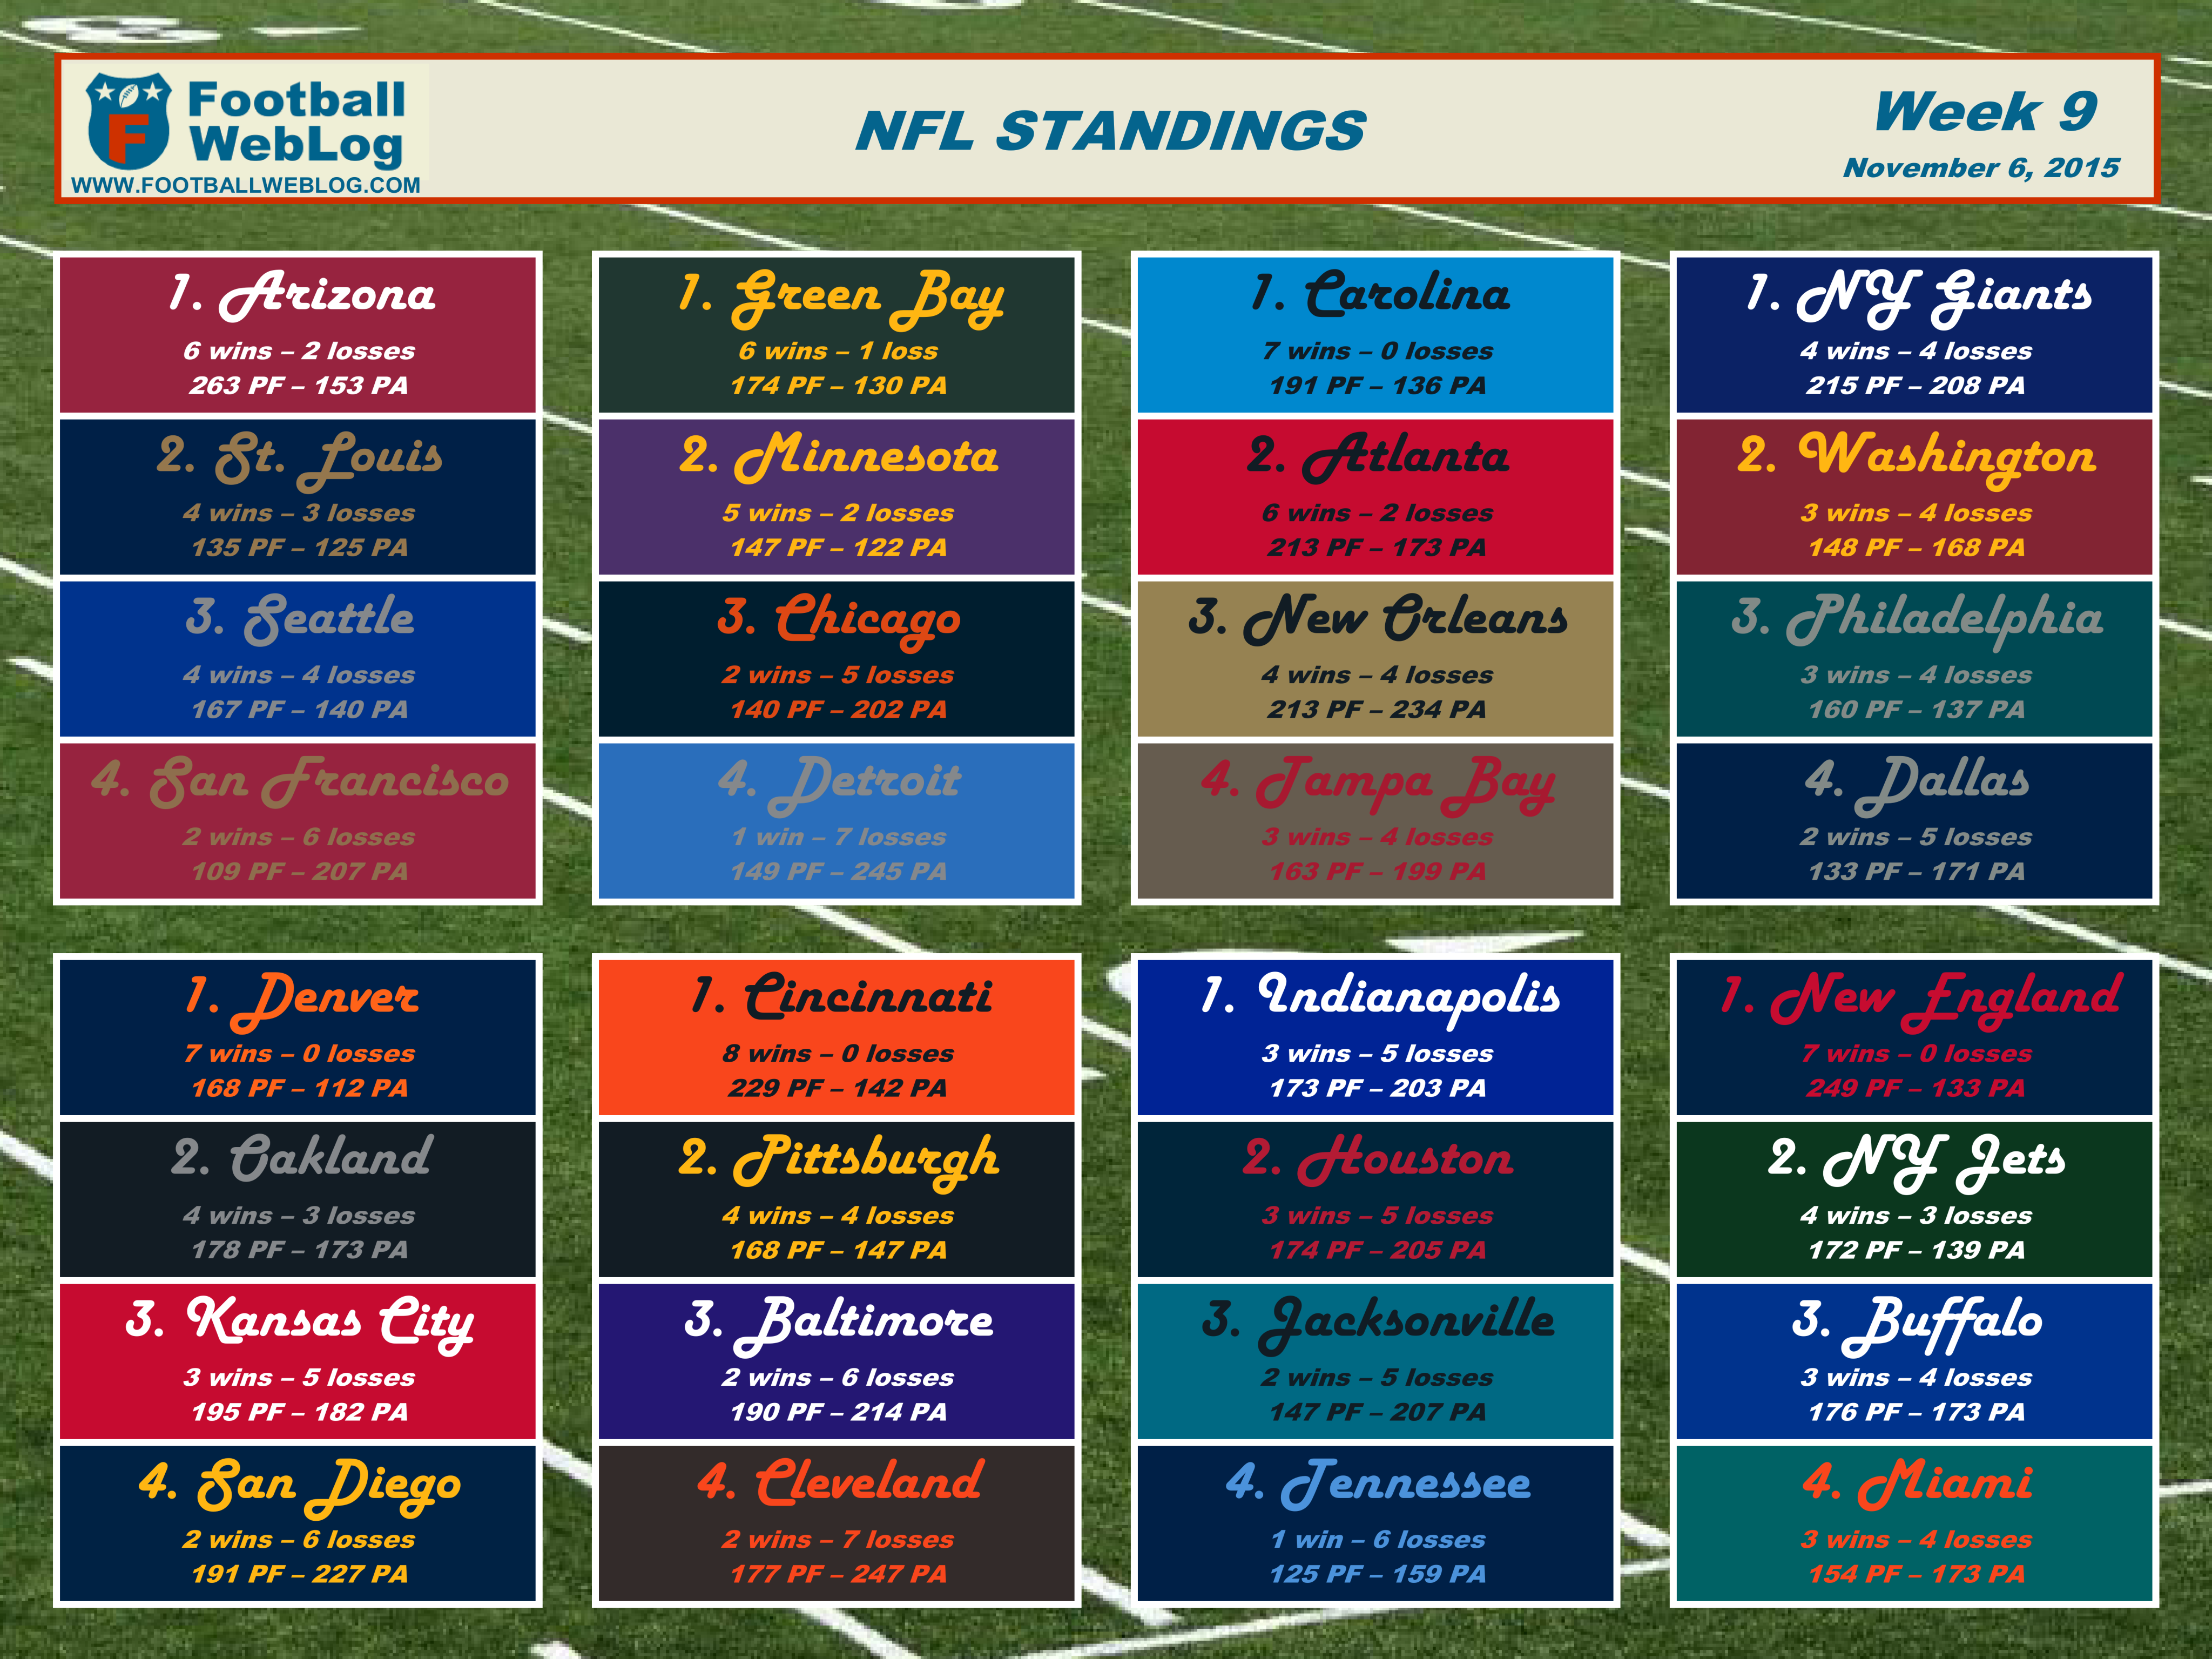 graphic relating to Nfl Week 9 Schedule Printable named 2015 7 days 9 Printable Standings (Nov. 6) Soccer Blog site